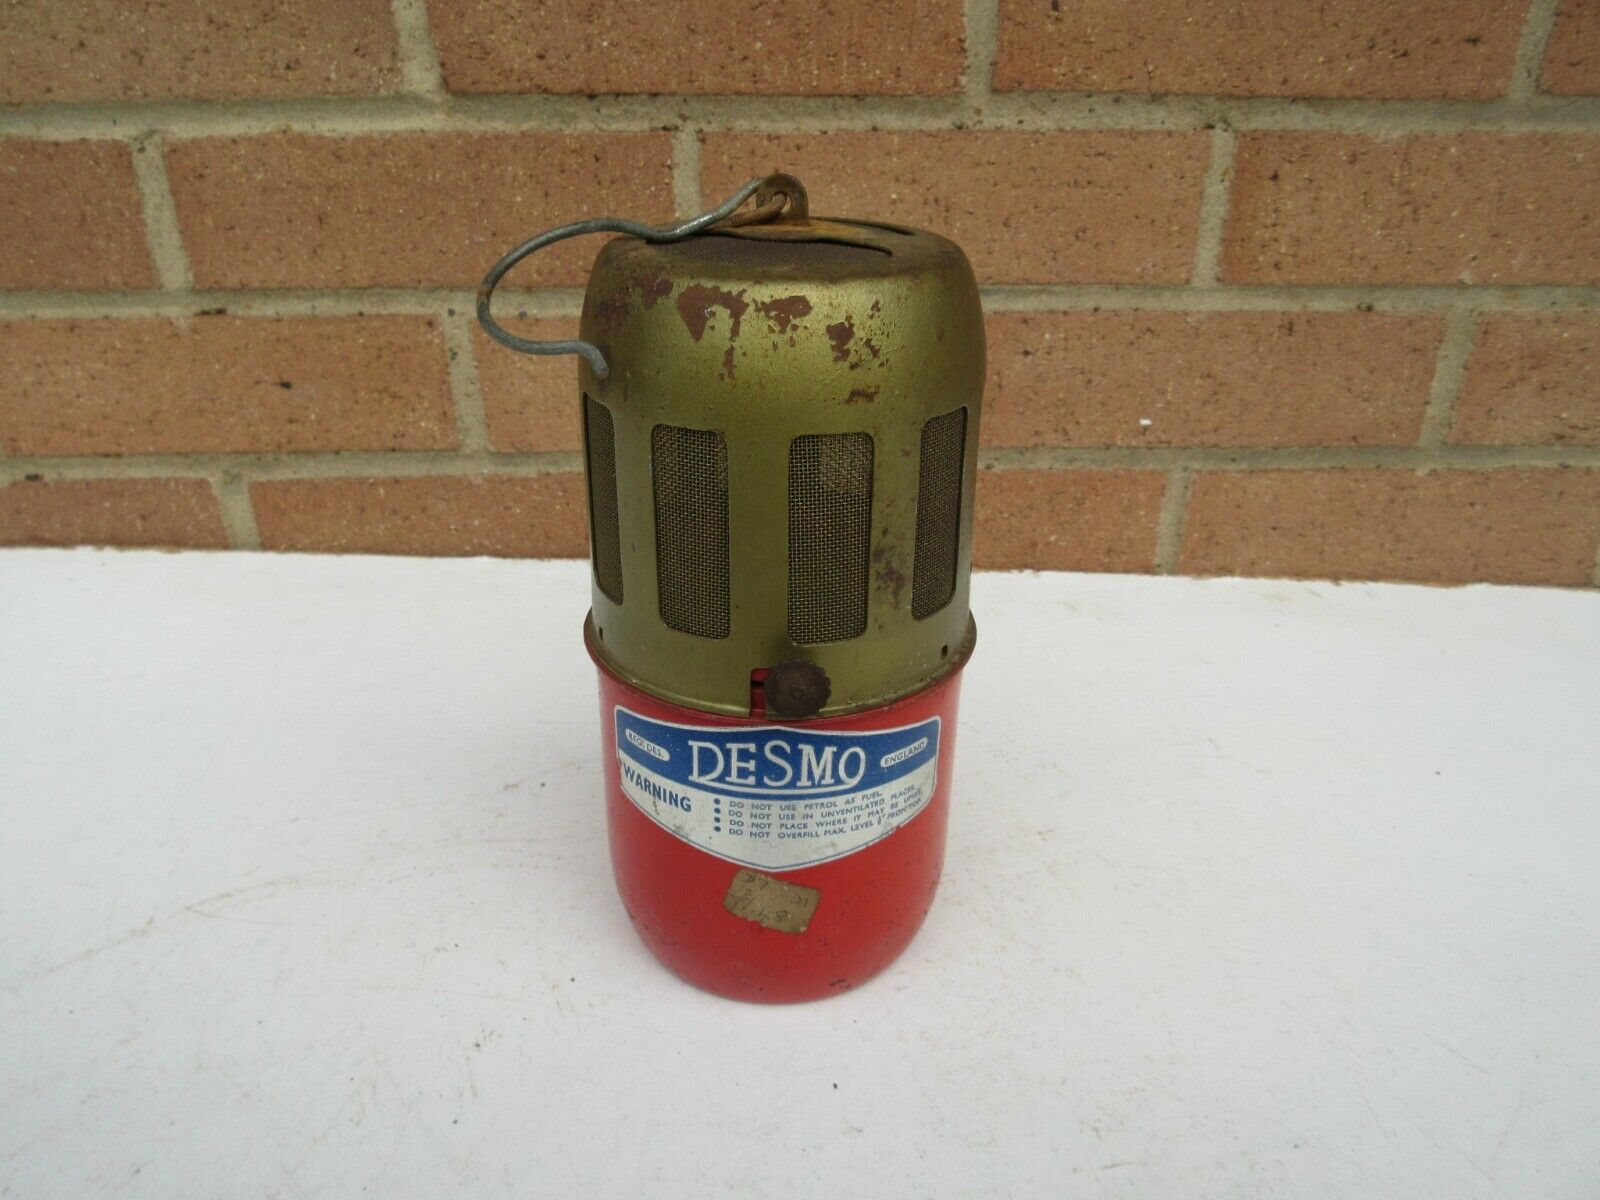 Vintage old rusty Desmo greenhouse anti frost hanging heater untested